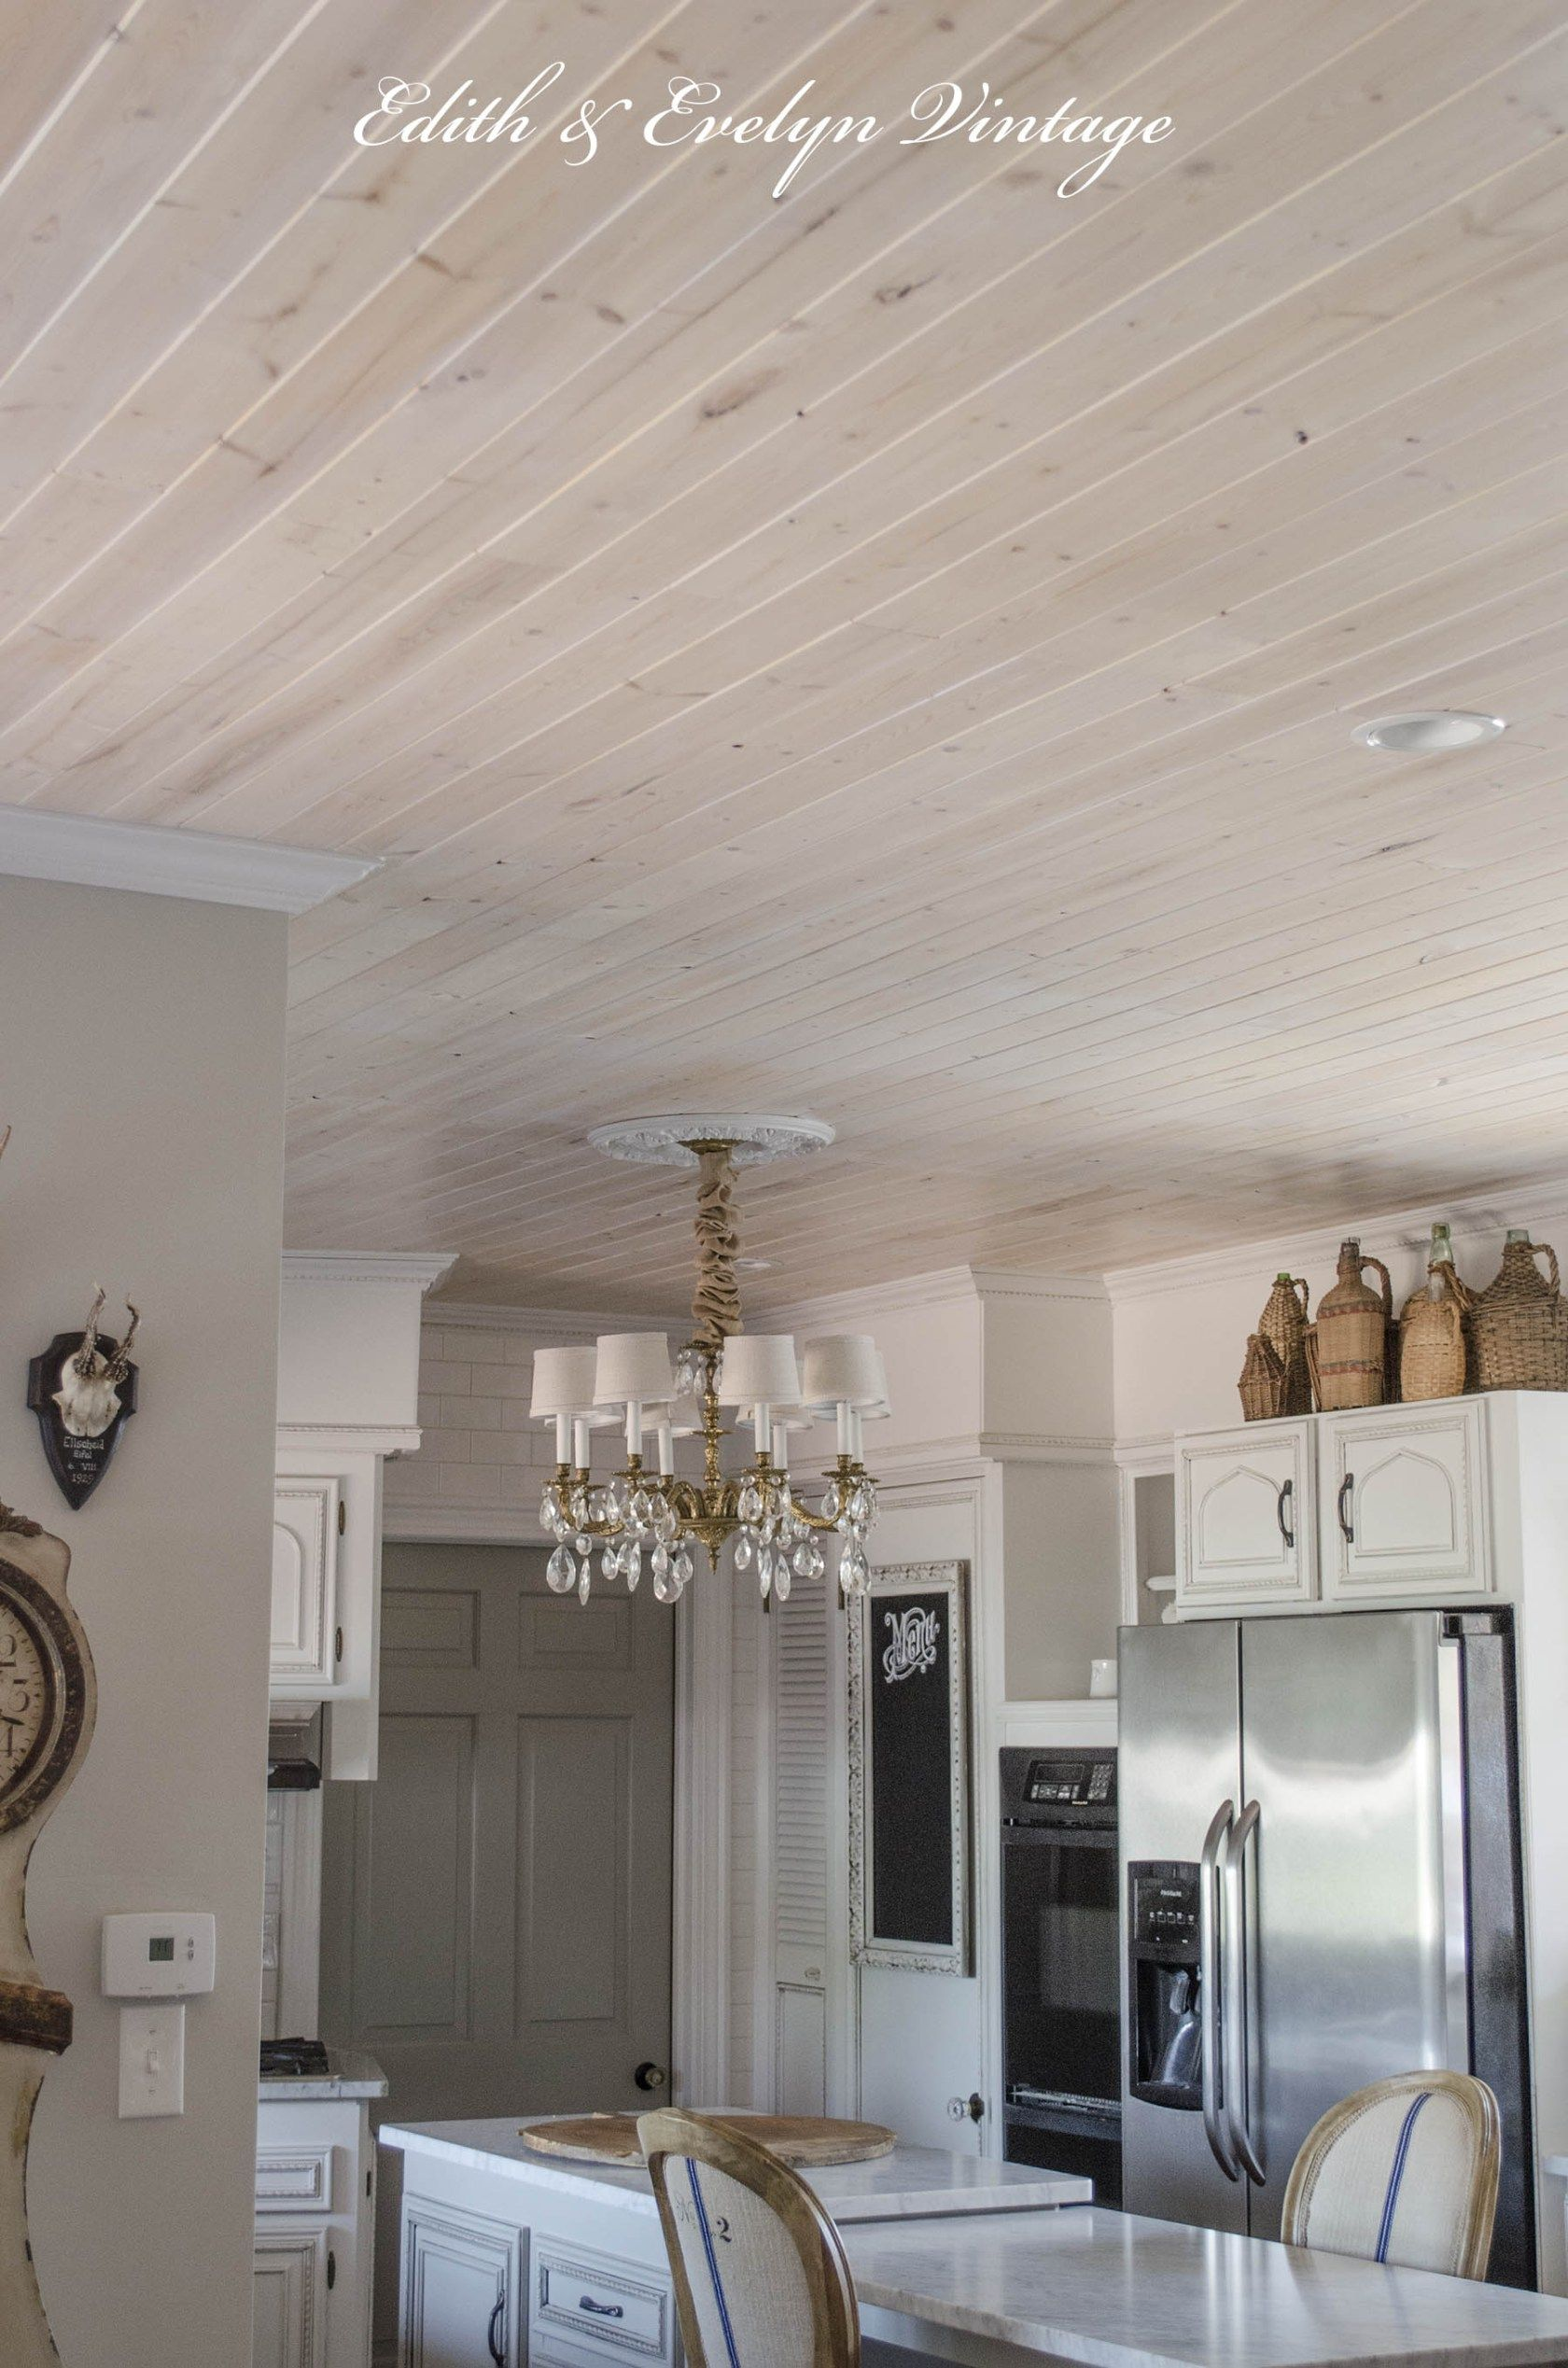 Planked ceiling in kitchen with pickling stain how to plank a planked ceiling in kitchen with pickling stain how to plank a popcorn ceiling dailygadgetfo Image collections